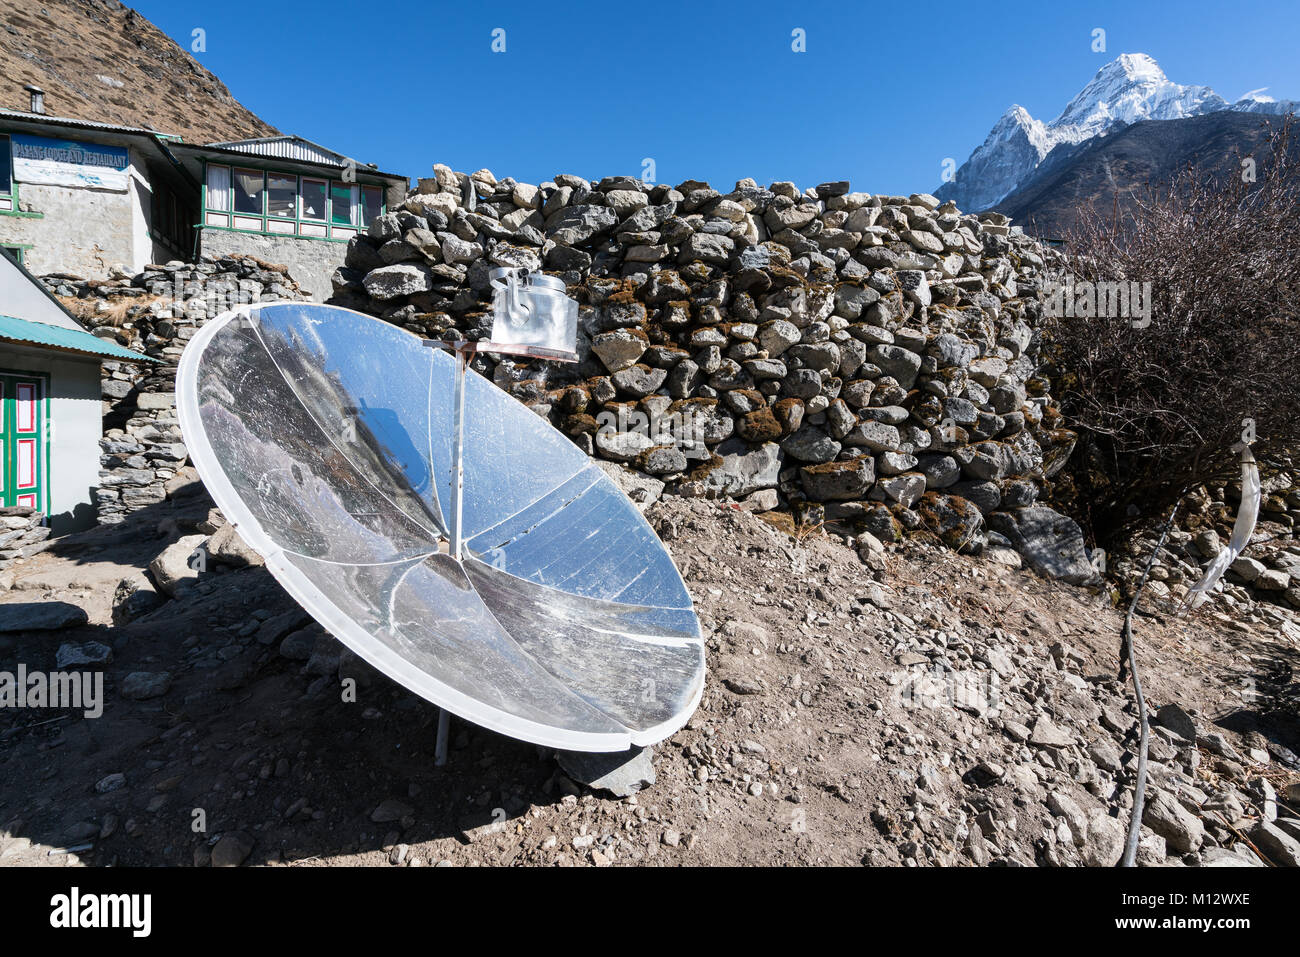 Water heating by solar power in Dingboche, Nepal - Stock Image